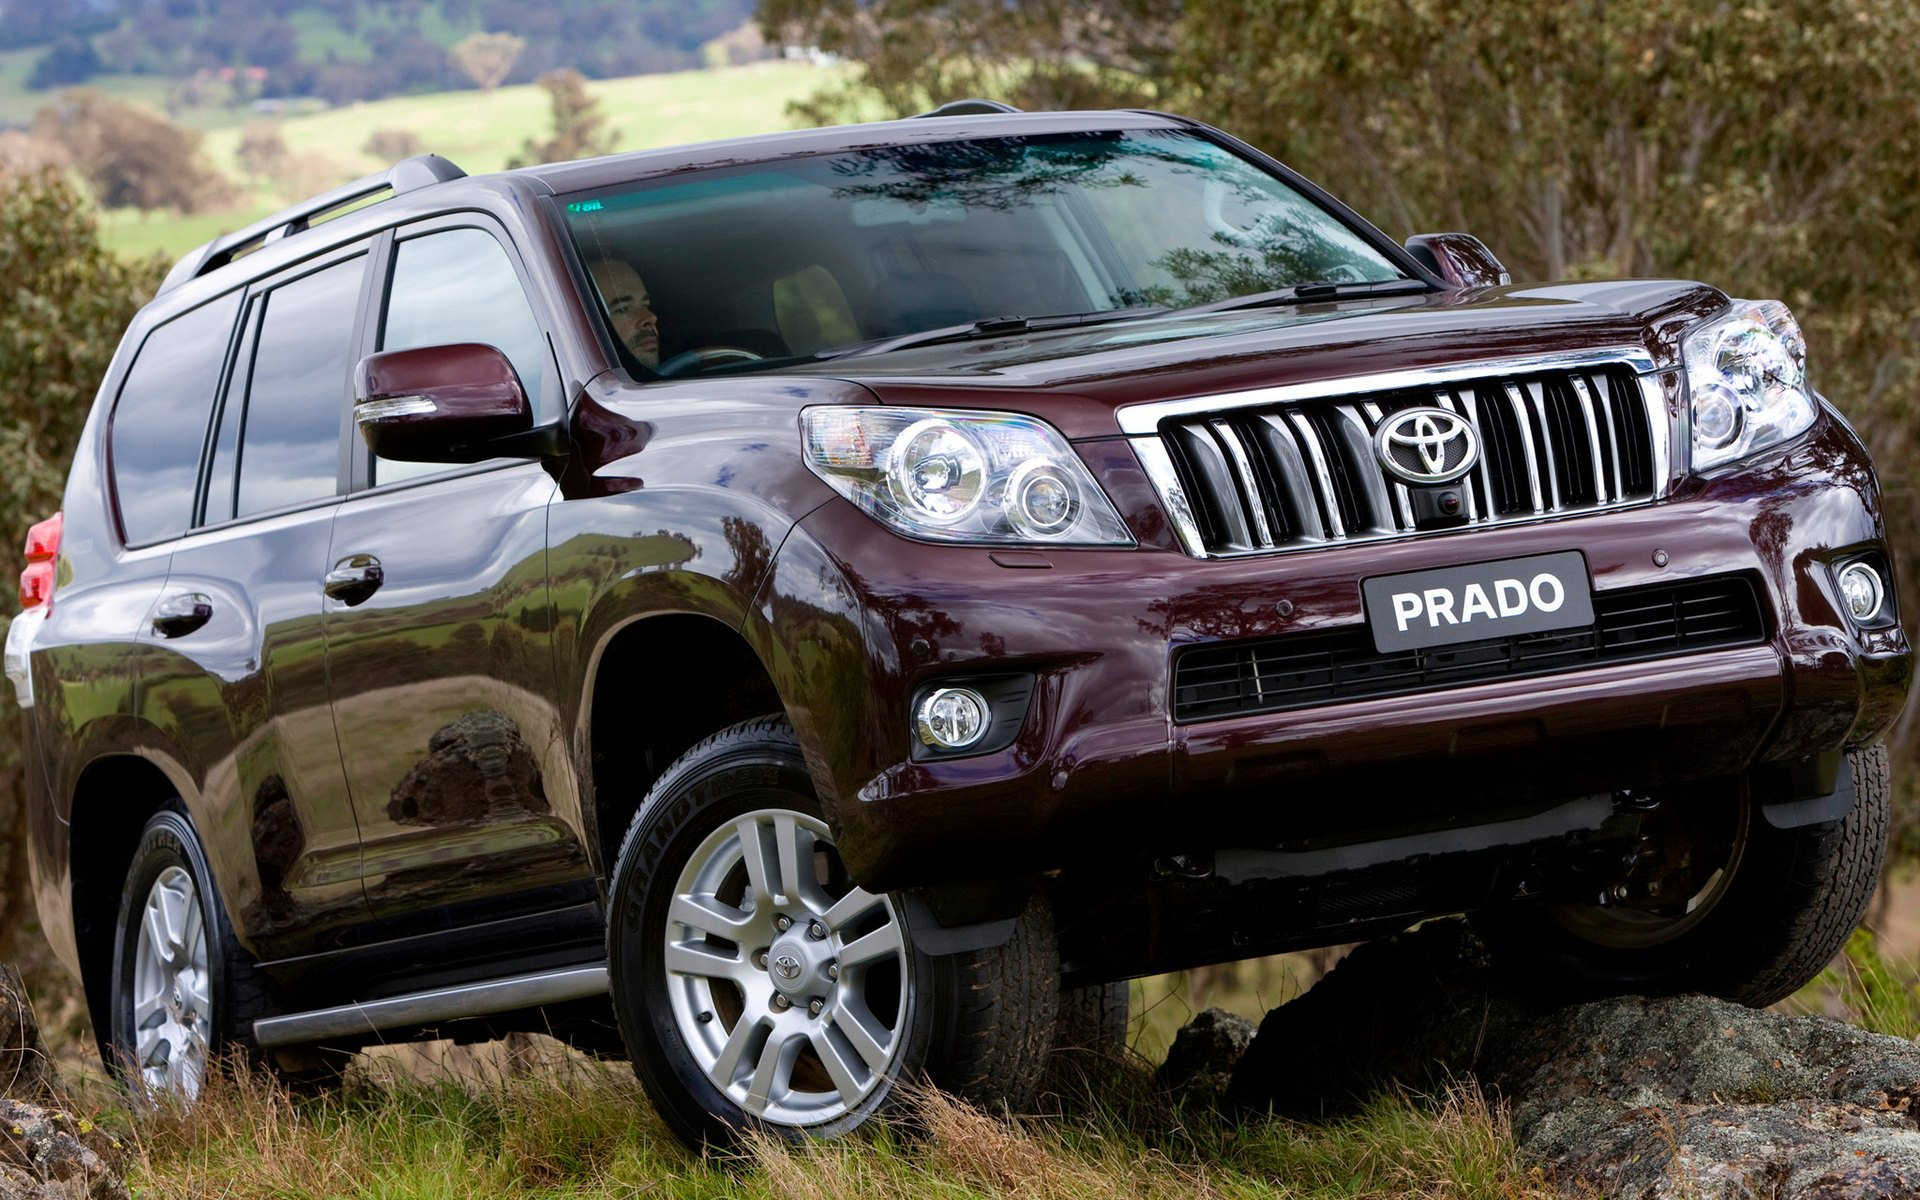 Land Cruiser Prado Widescreen HD Wallpaper